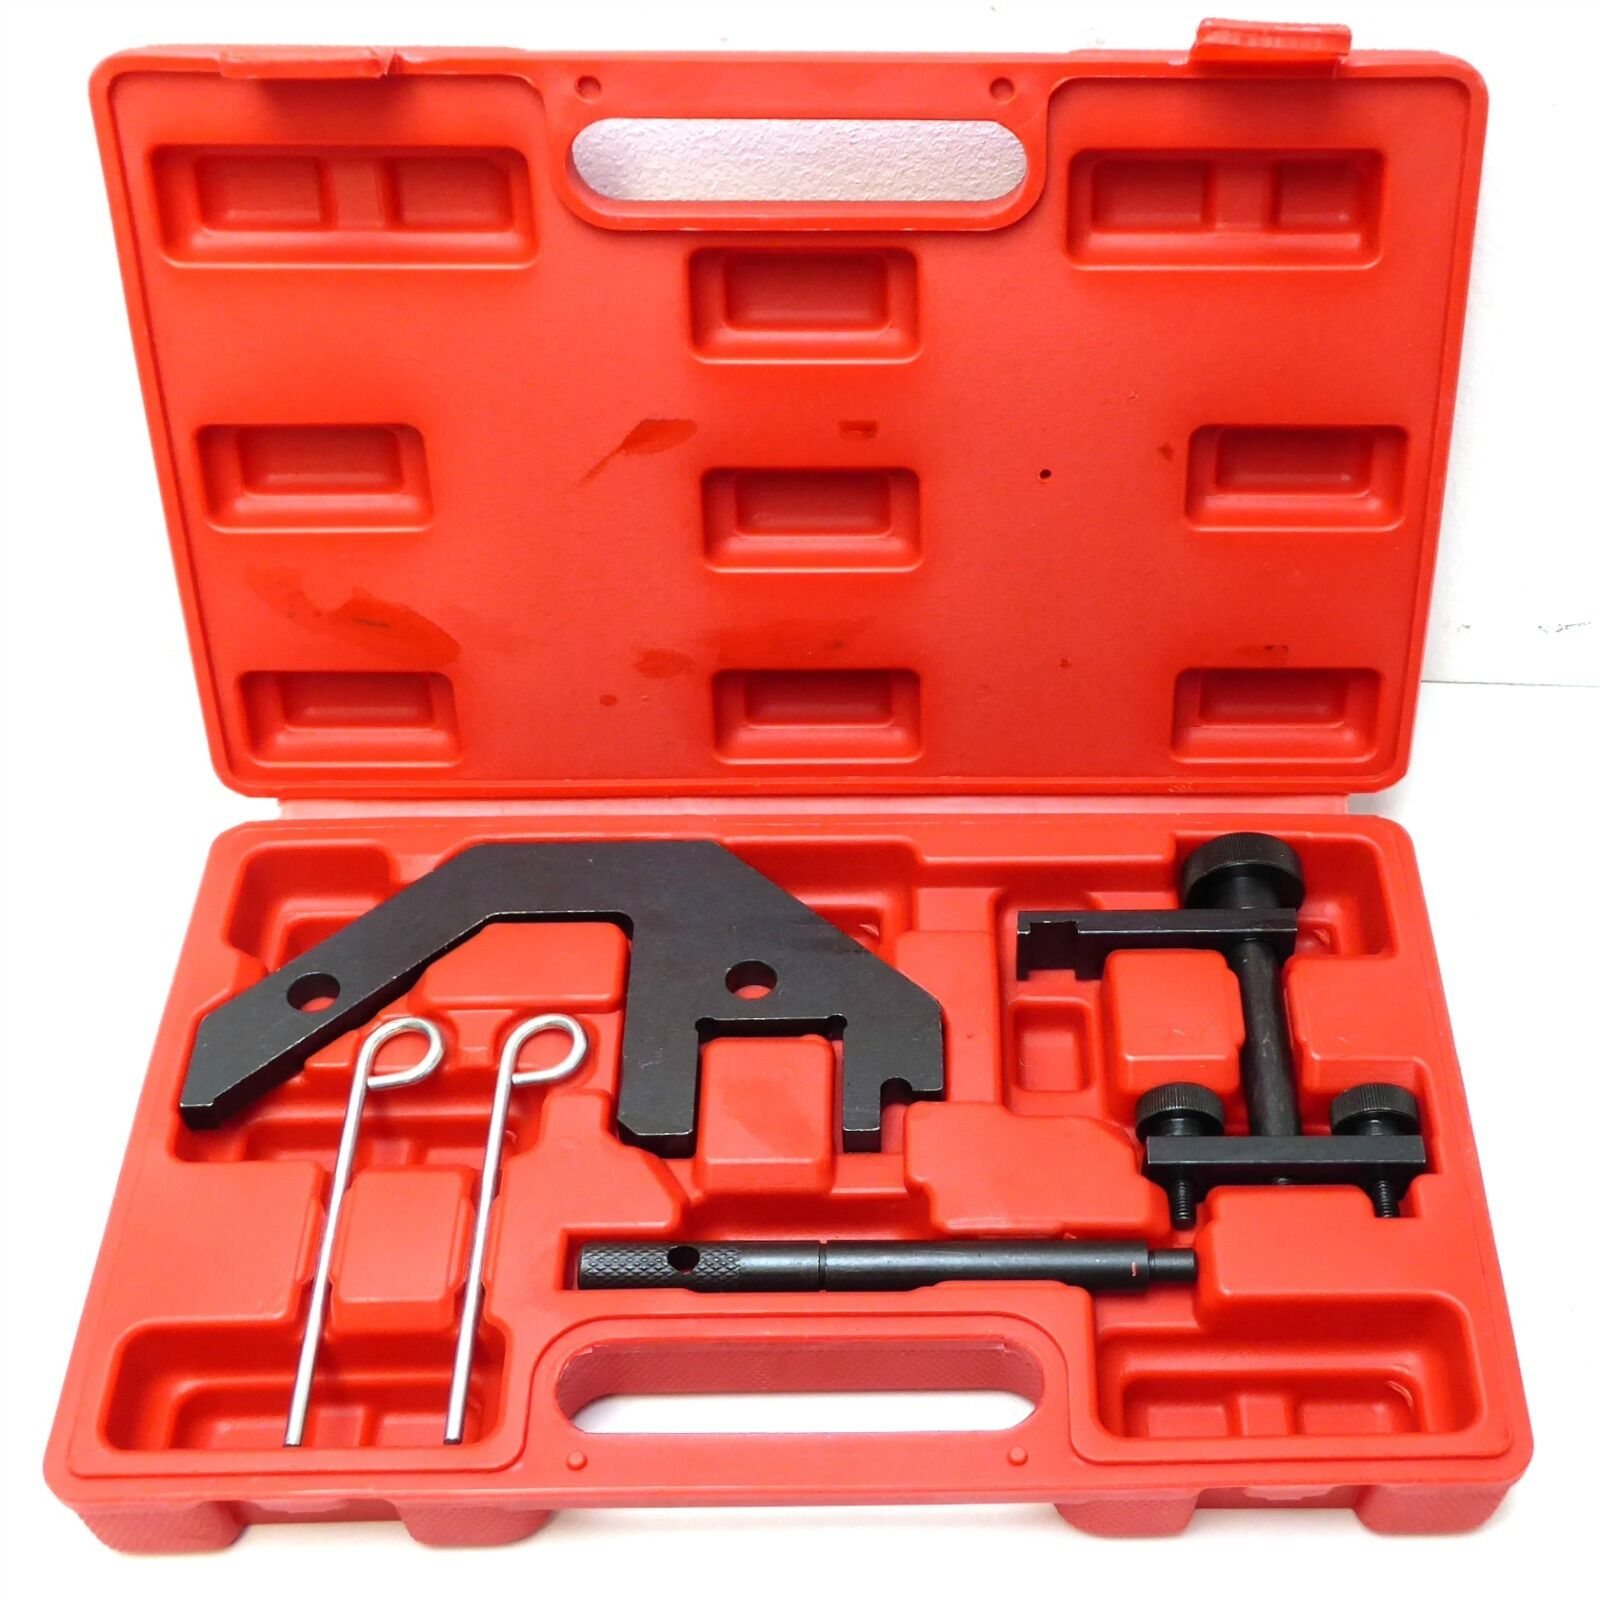 Vw 1600 Engine Removal: BMW 2.0 3.0D M47 M57 TU/T2 Timing Tool KIt Land Rover 2.0